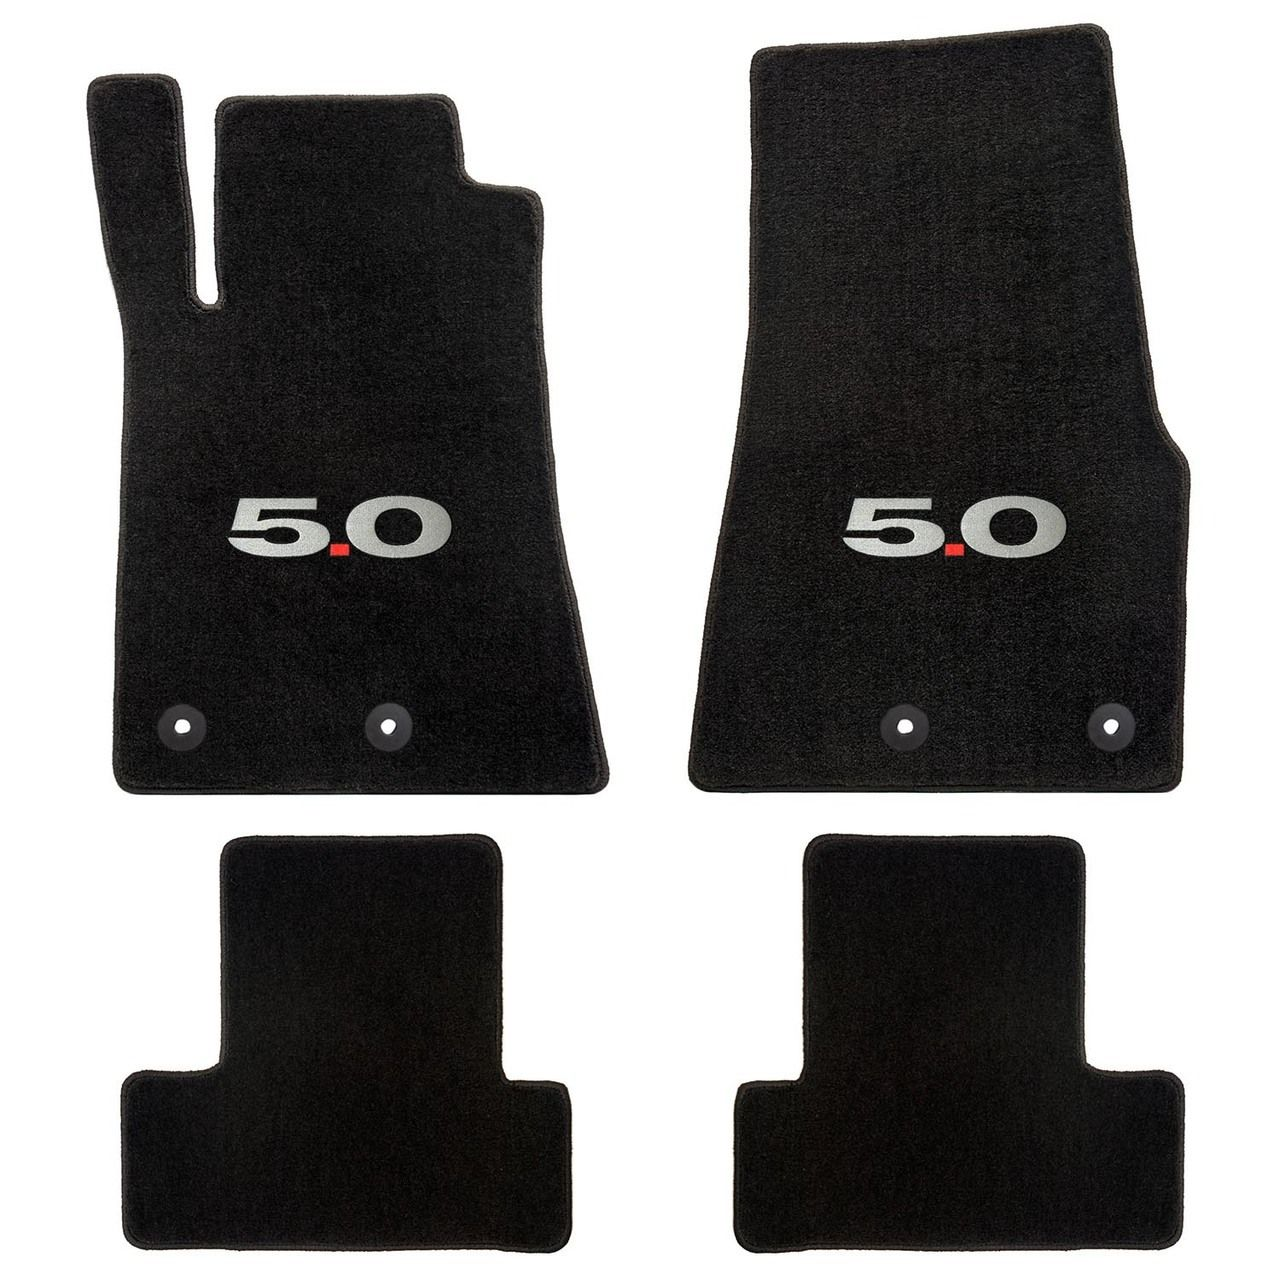 Ford Mustang 2013 2014 4pc Mats Black 5 0 Logo Heavy Plush